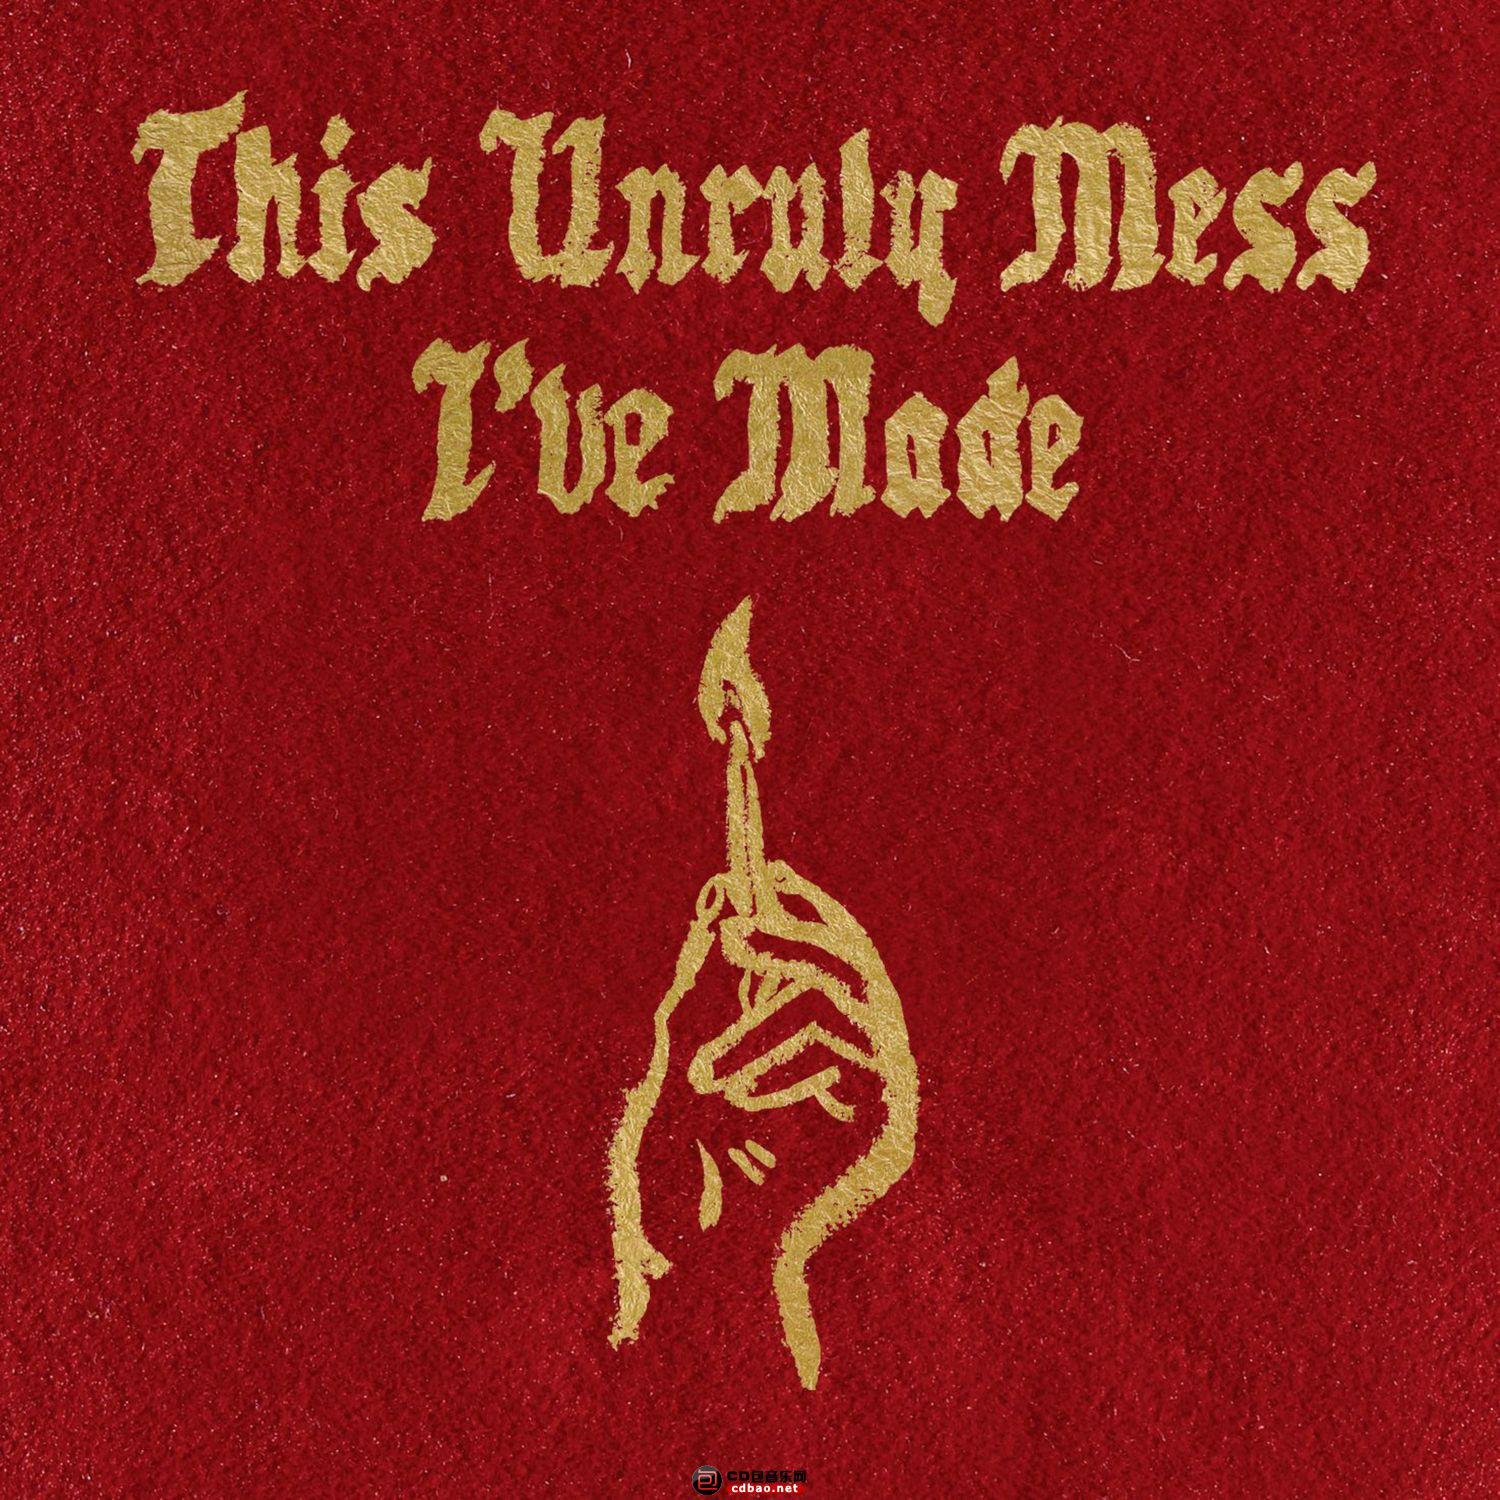 Macklemore-Ryan-Lewis-This-Unruly-Mess-Ive-Made-2016.1.jpg